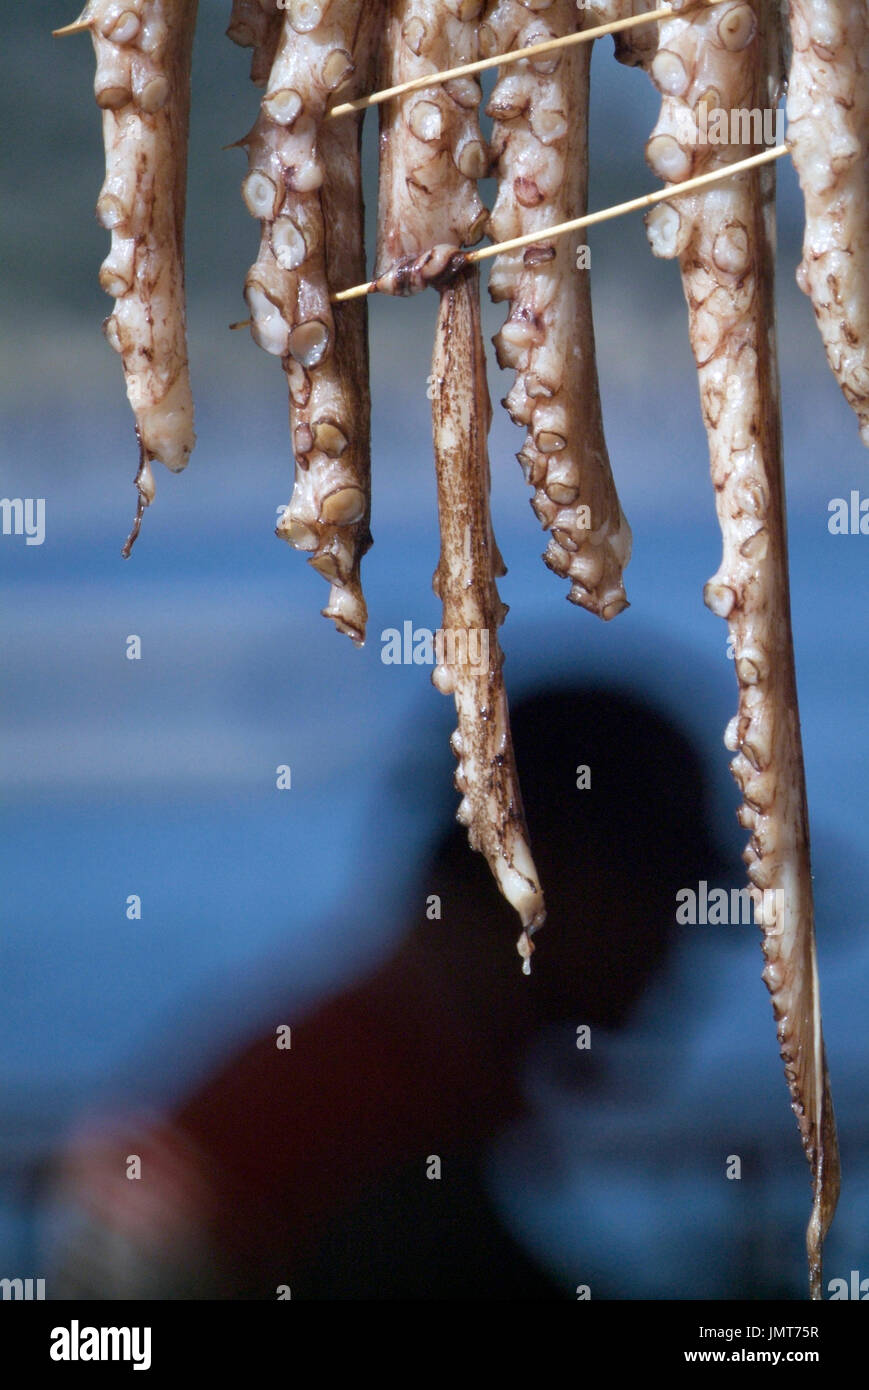 octopus drying in the sun - Stock Image